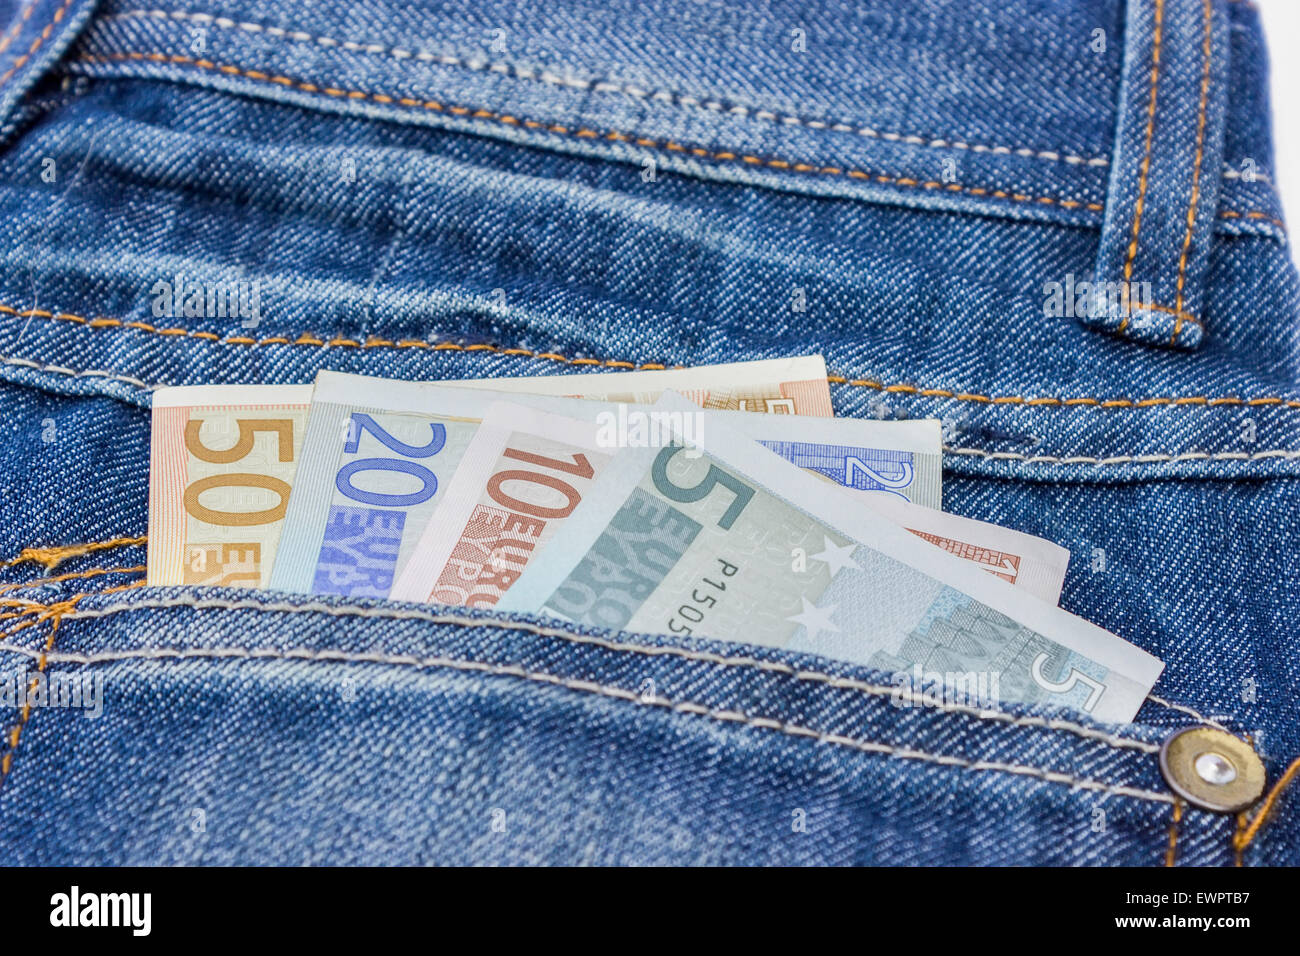 Jeans With Euro Bills In Back Pocket As Symbol For Money To Spend